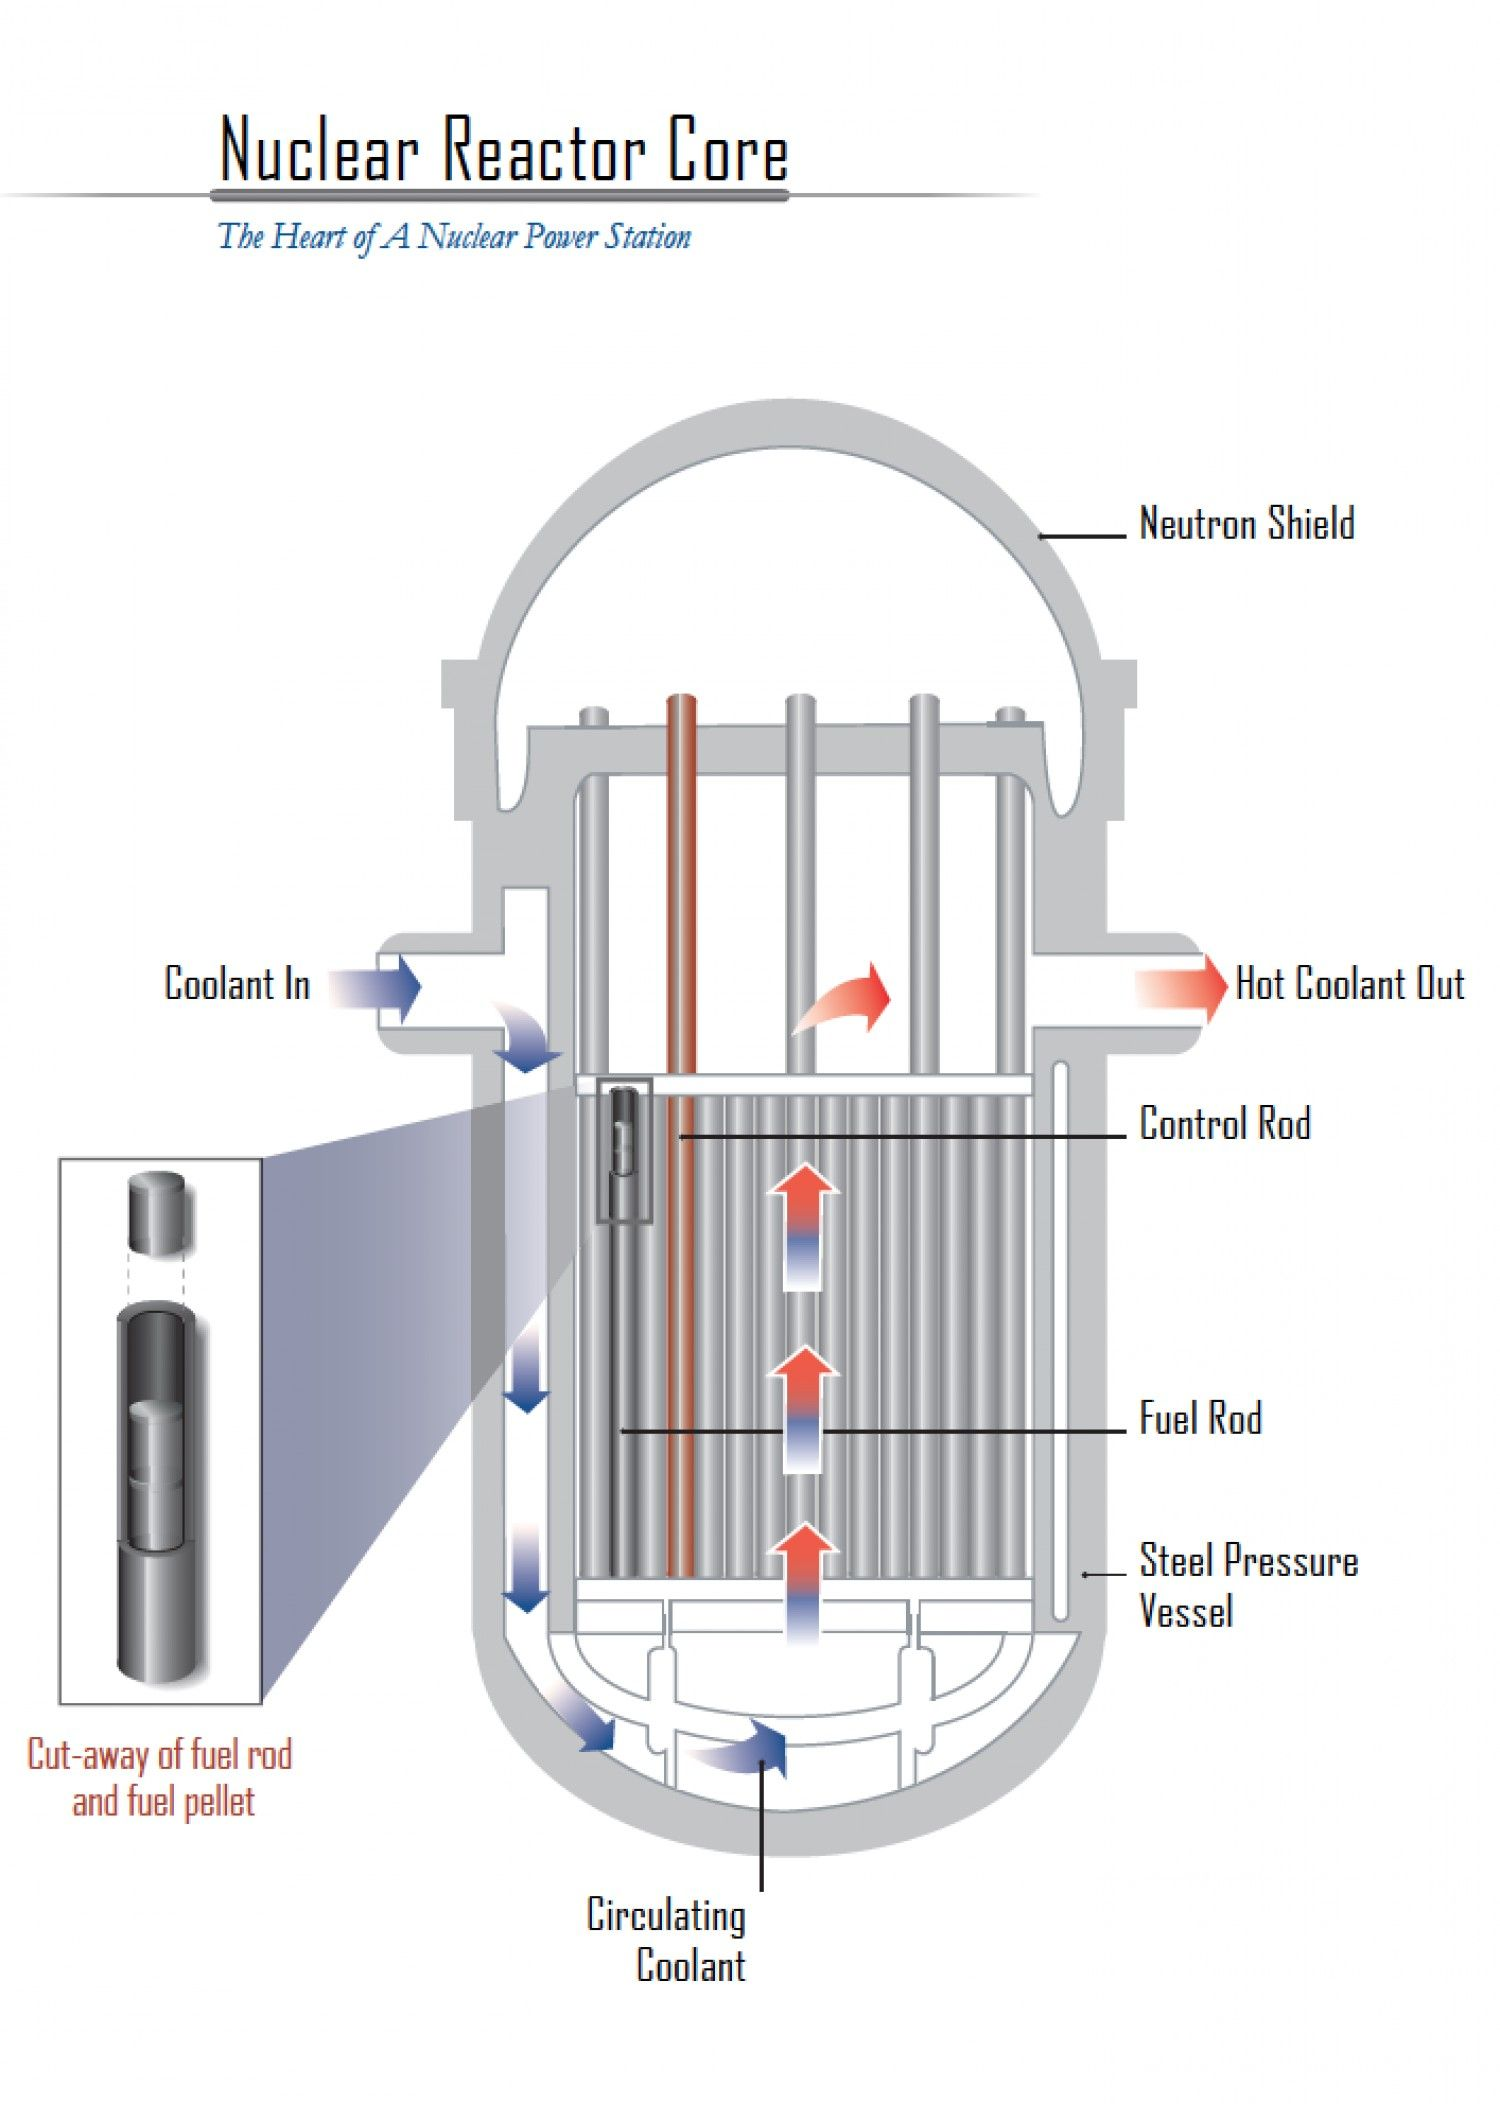 hight resolution of nuclear reactor core schematic infographic